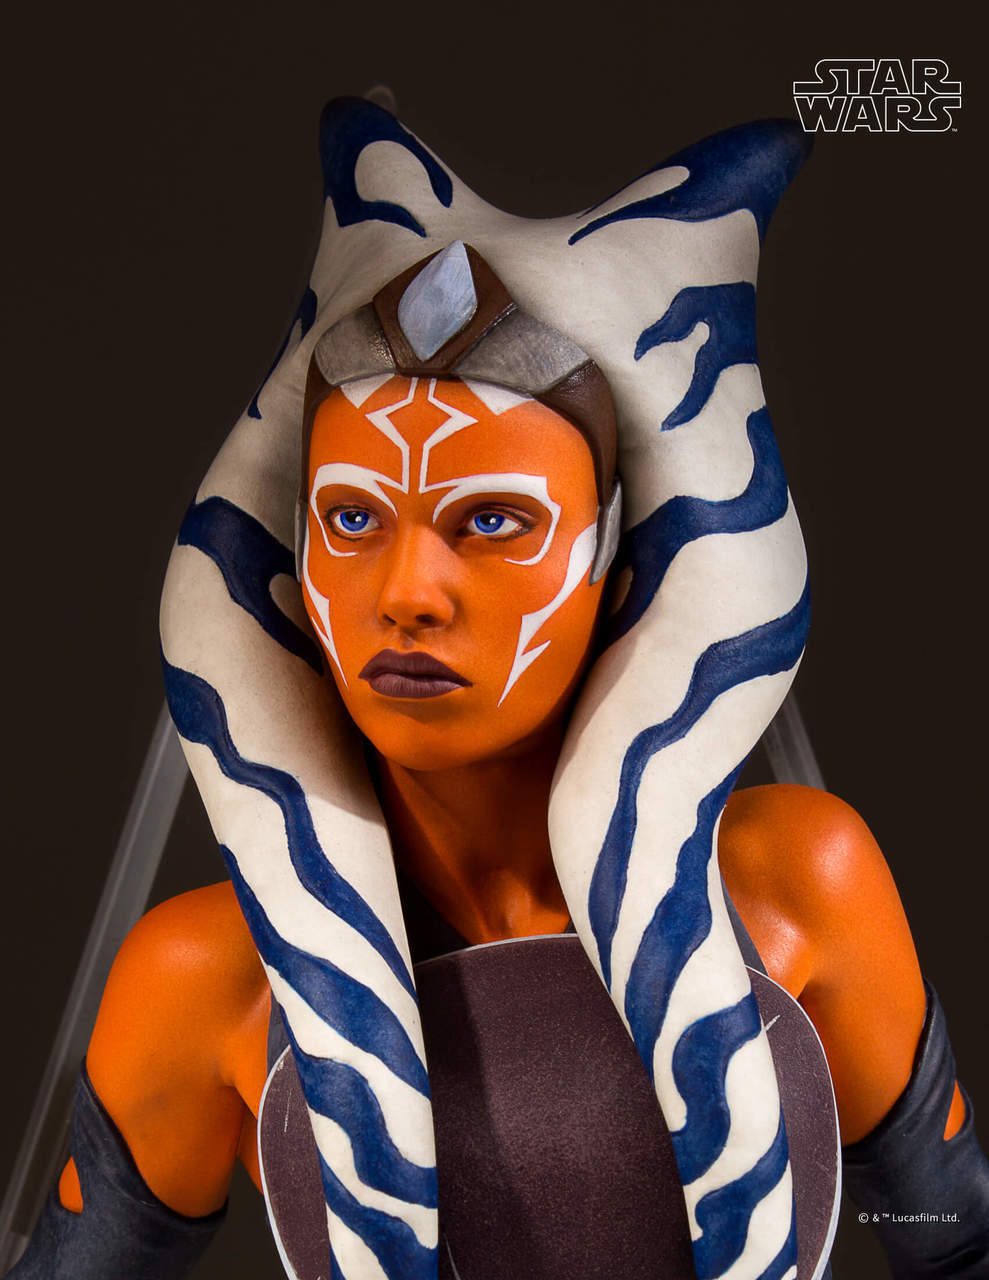 Gentle Giant Ahsoka Tano Mini Bust 6